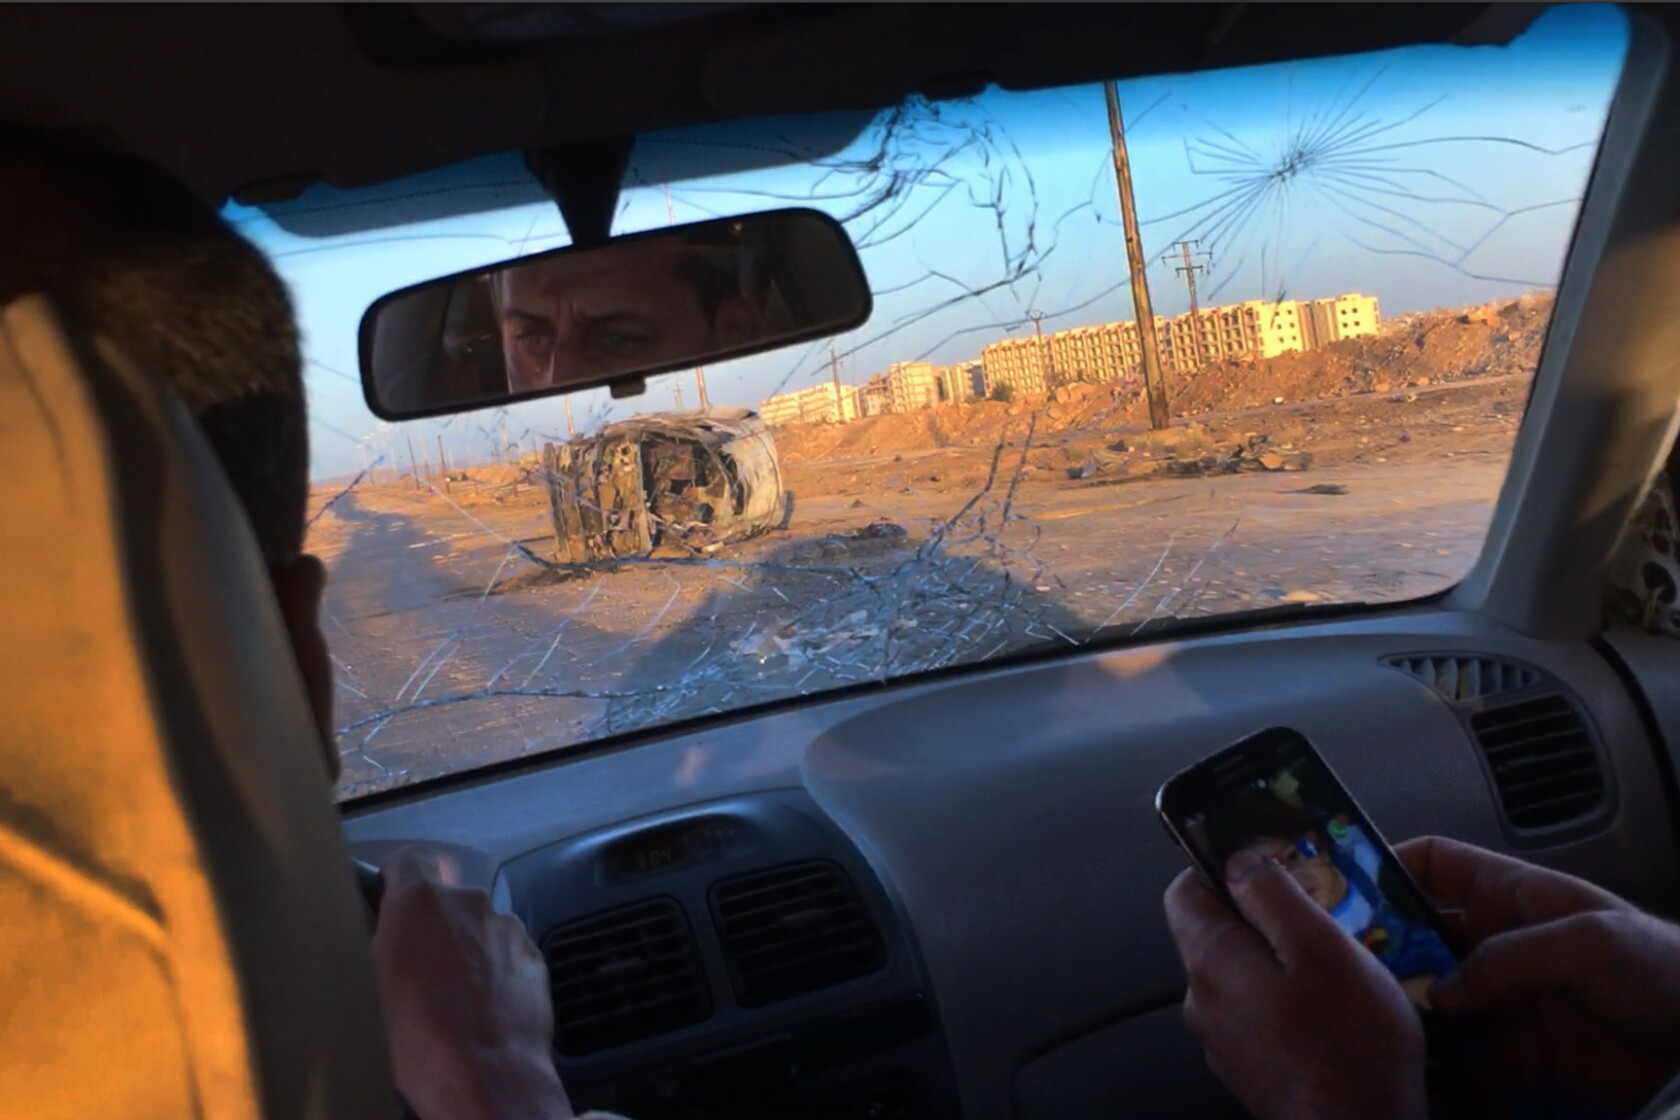 Doctors travel a dangerous road to help ease the horrors of war-torn Aleppo, Syria